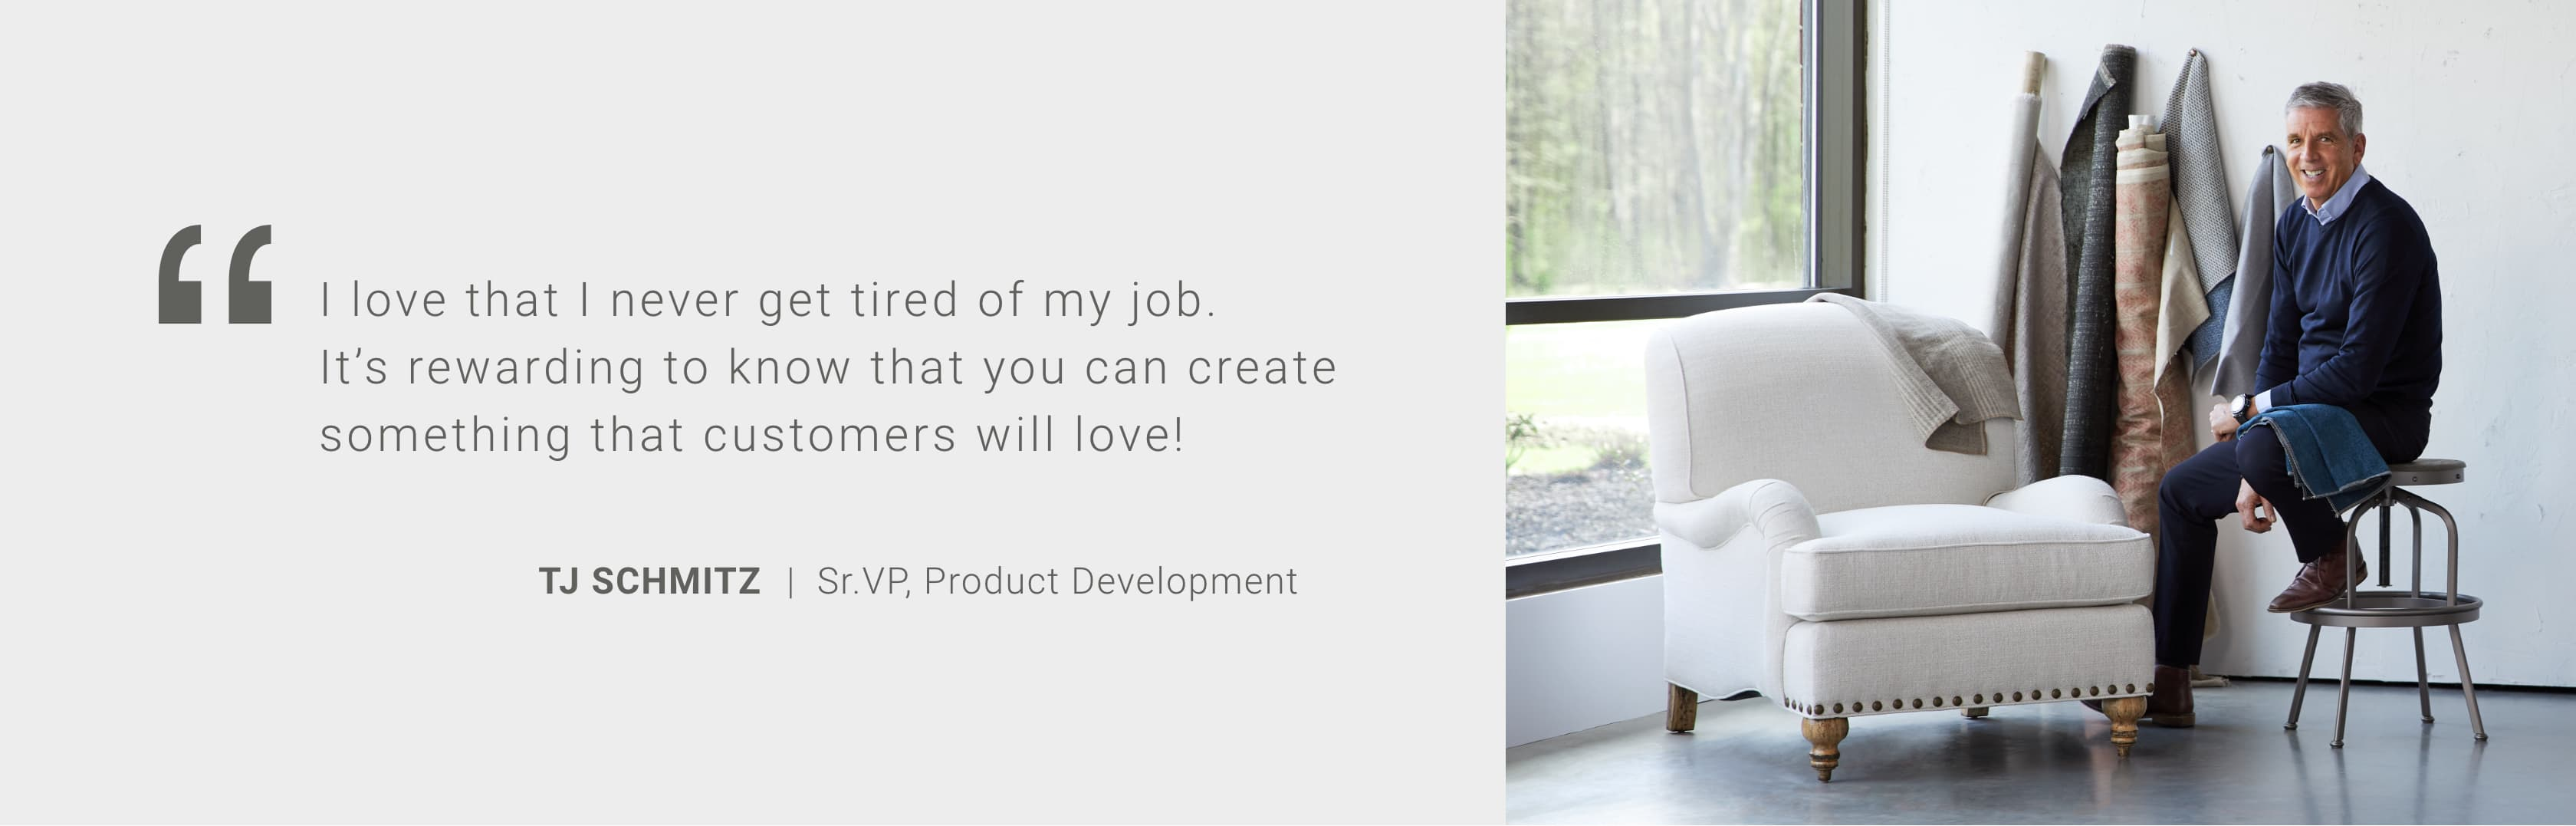 Quote from TJ Schmitz, Sr. VP of Product Development